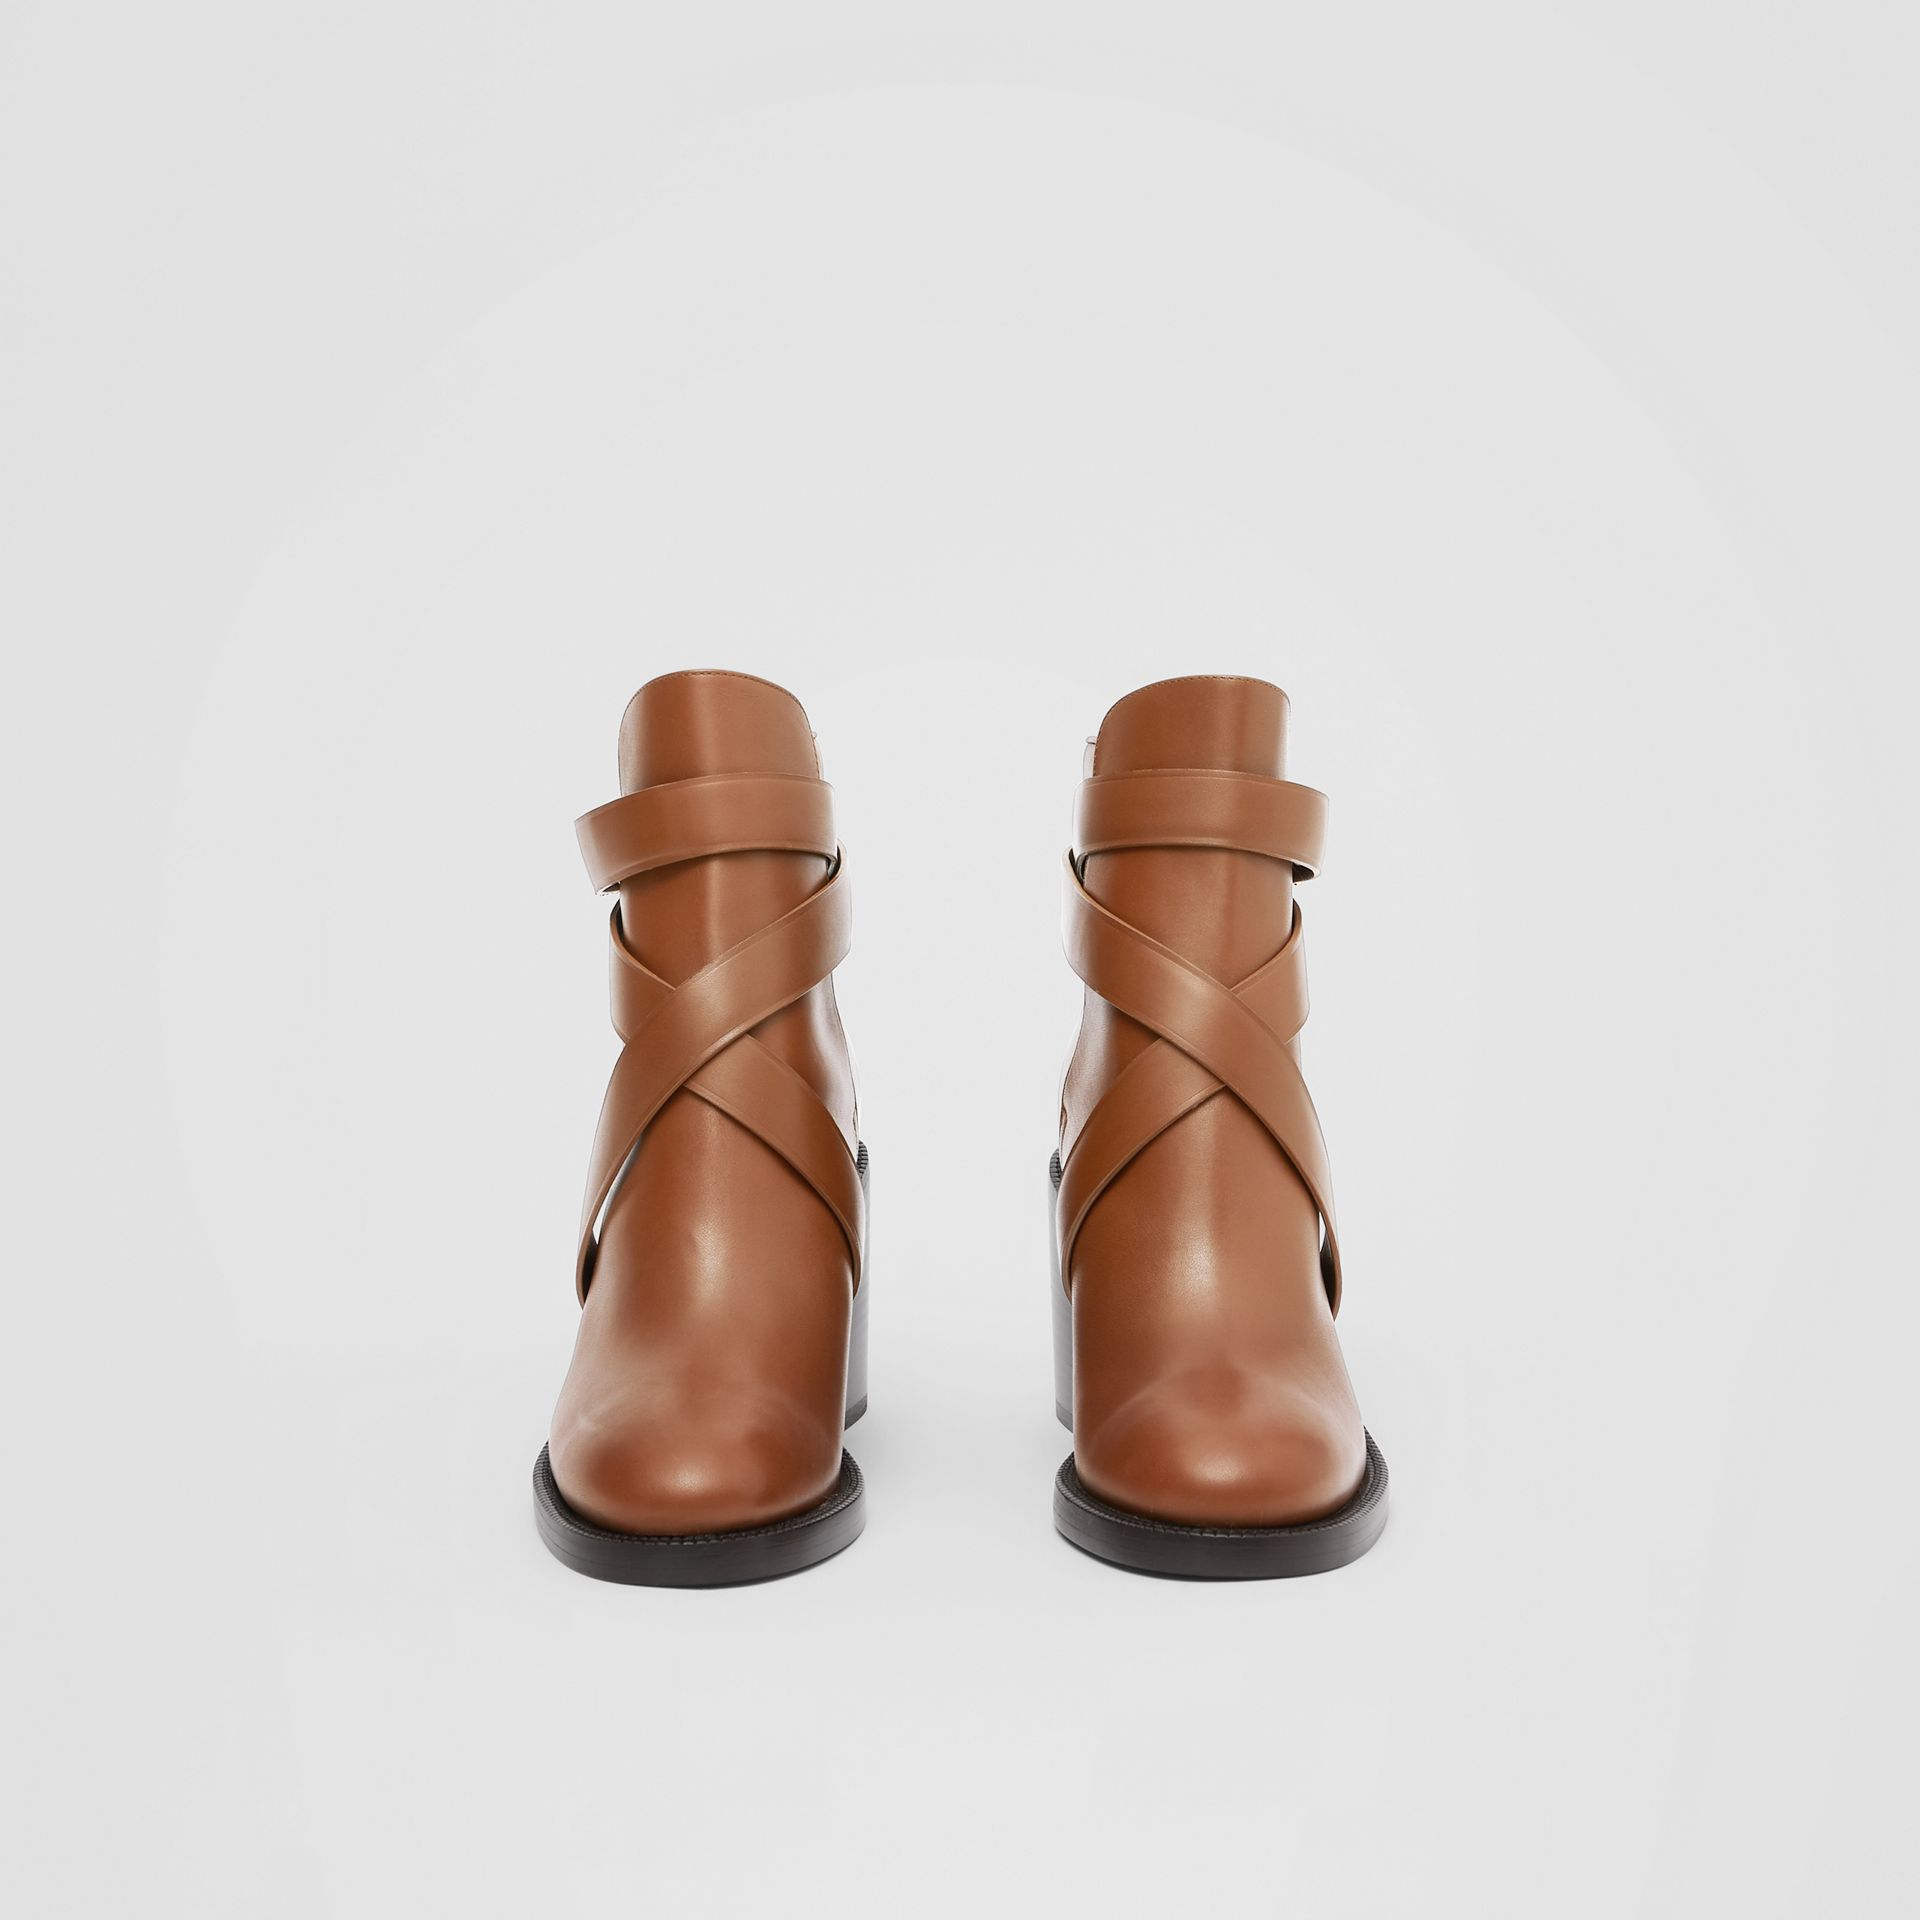 Monogram Motif Leather Ankle Boots in Tan - Women | Burberry Canada - gallery image 2